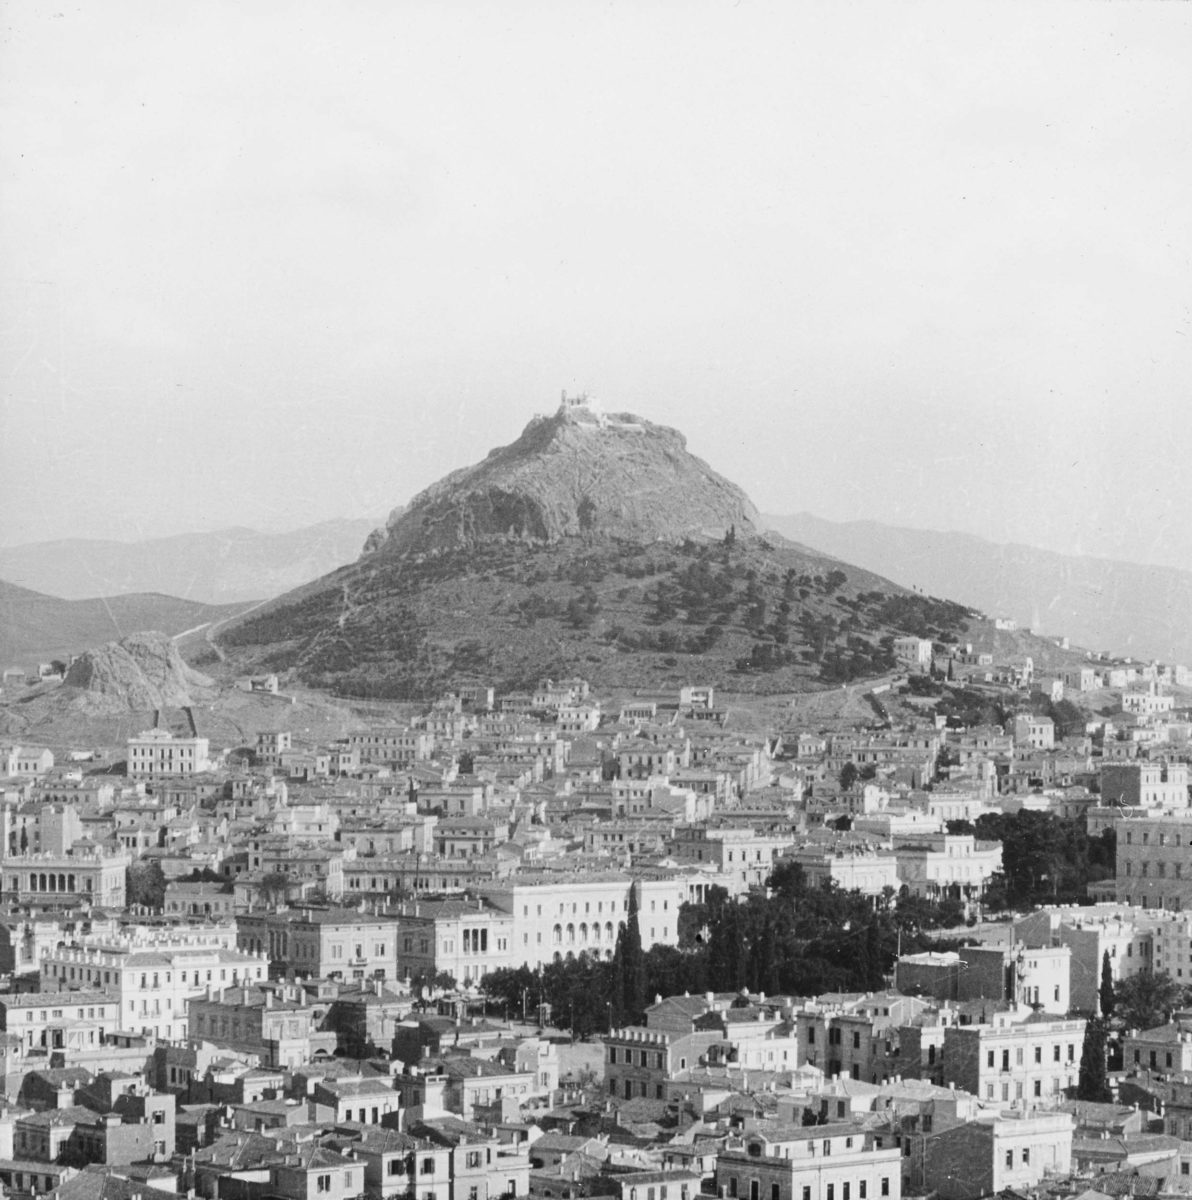 View of Athens from the Acropolis with Mount Lycabettus.